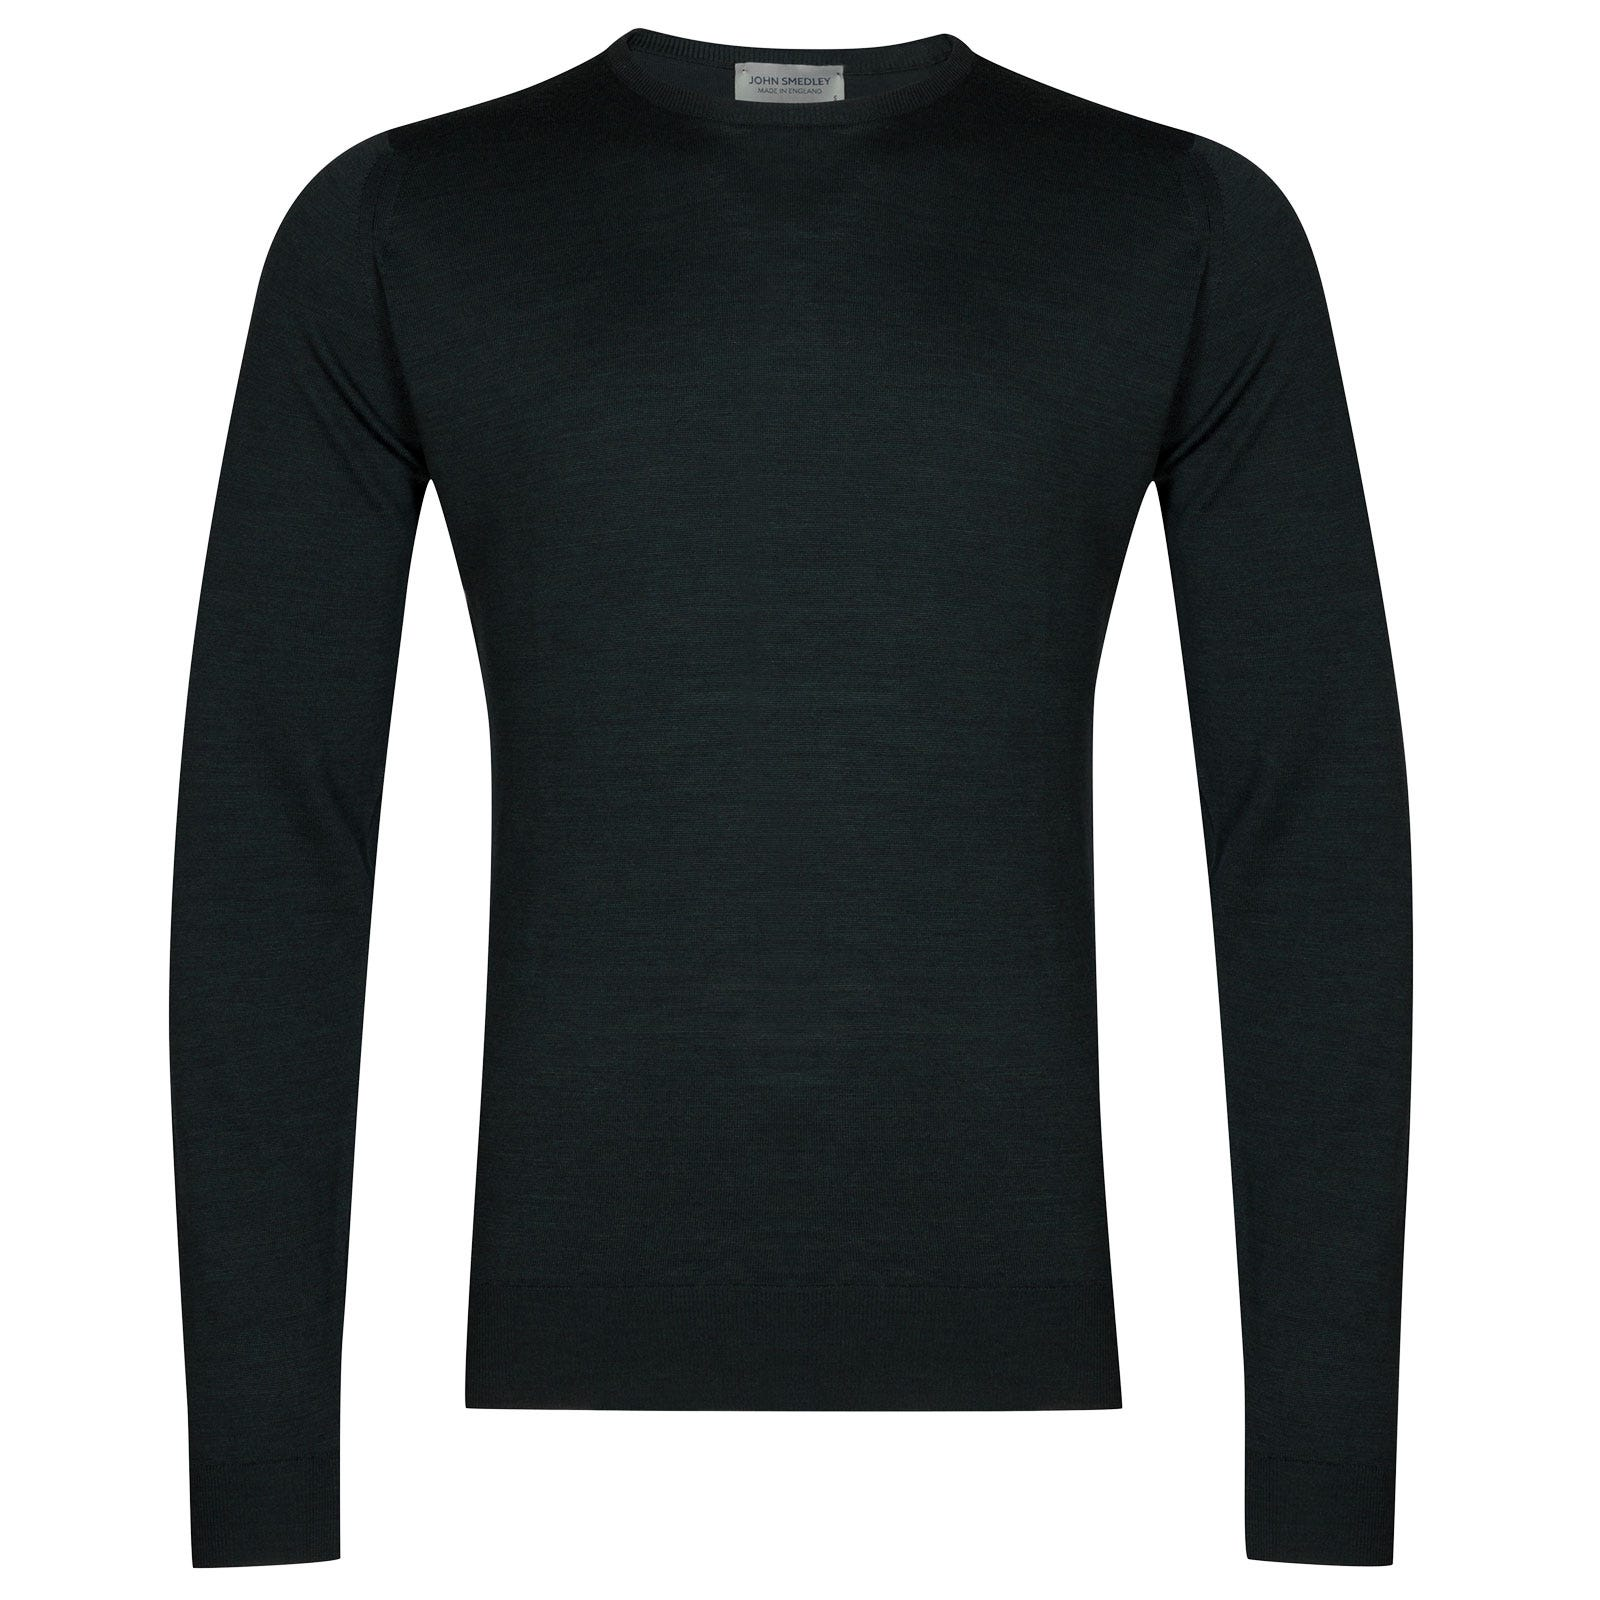 John Smedley lundy Merino Wool Pullover in Racing Green-L